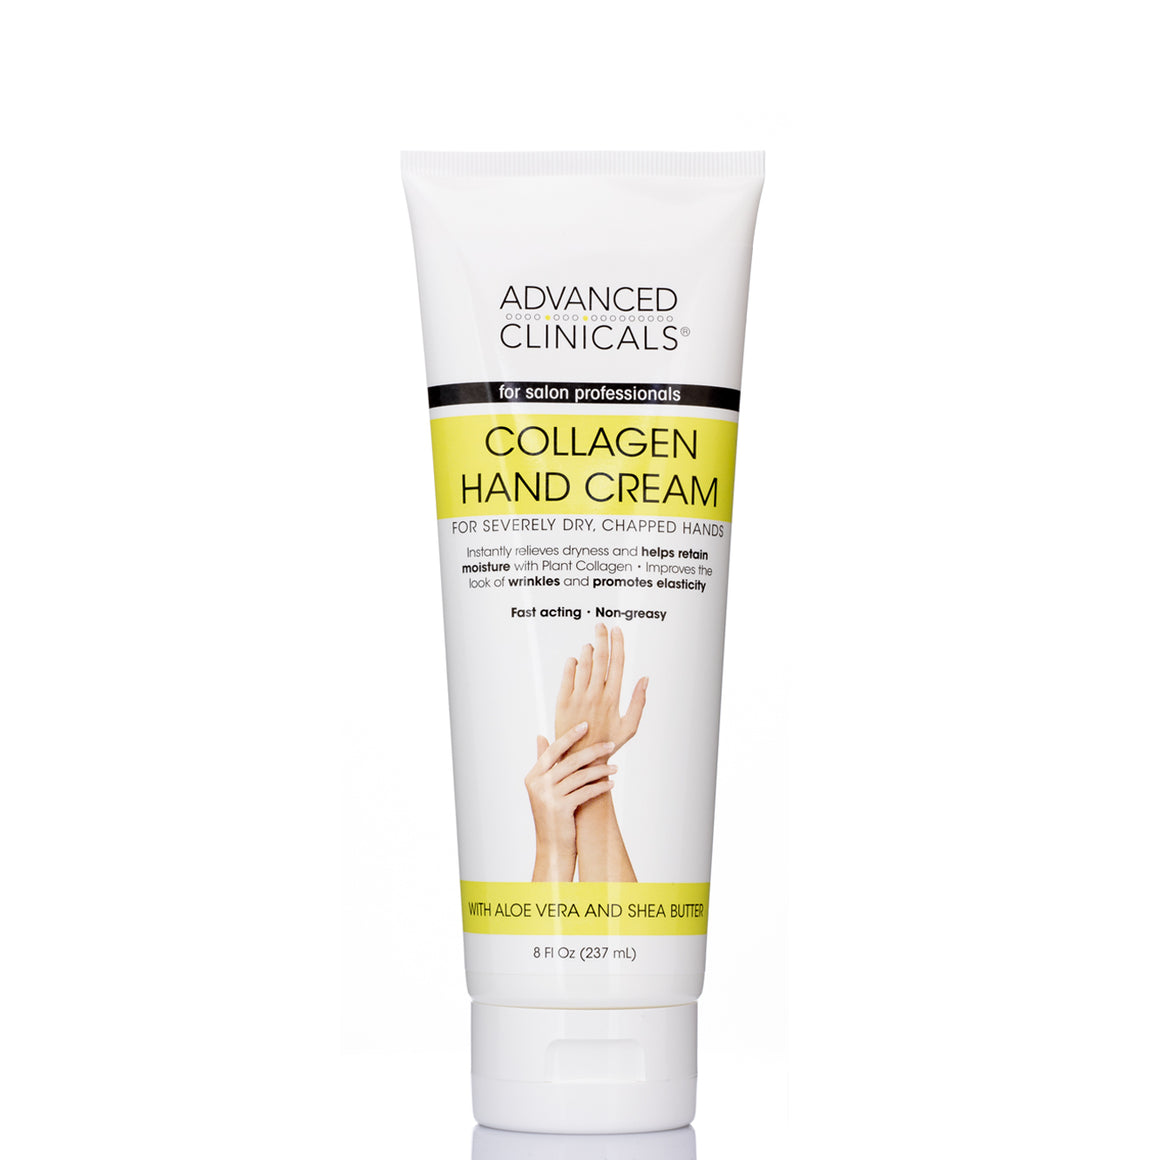 fast acting and non greasy collagen hand cream with aloe vera and shea butter, instantly relieves dry hands